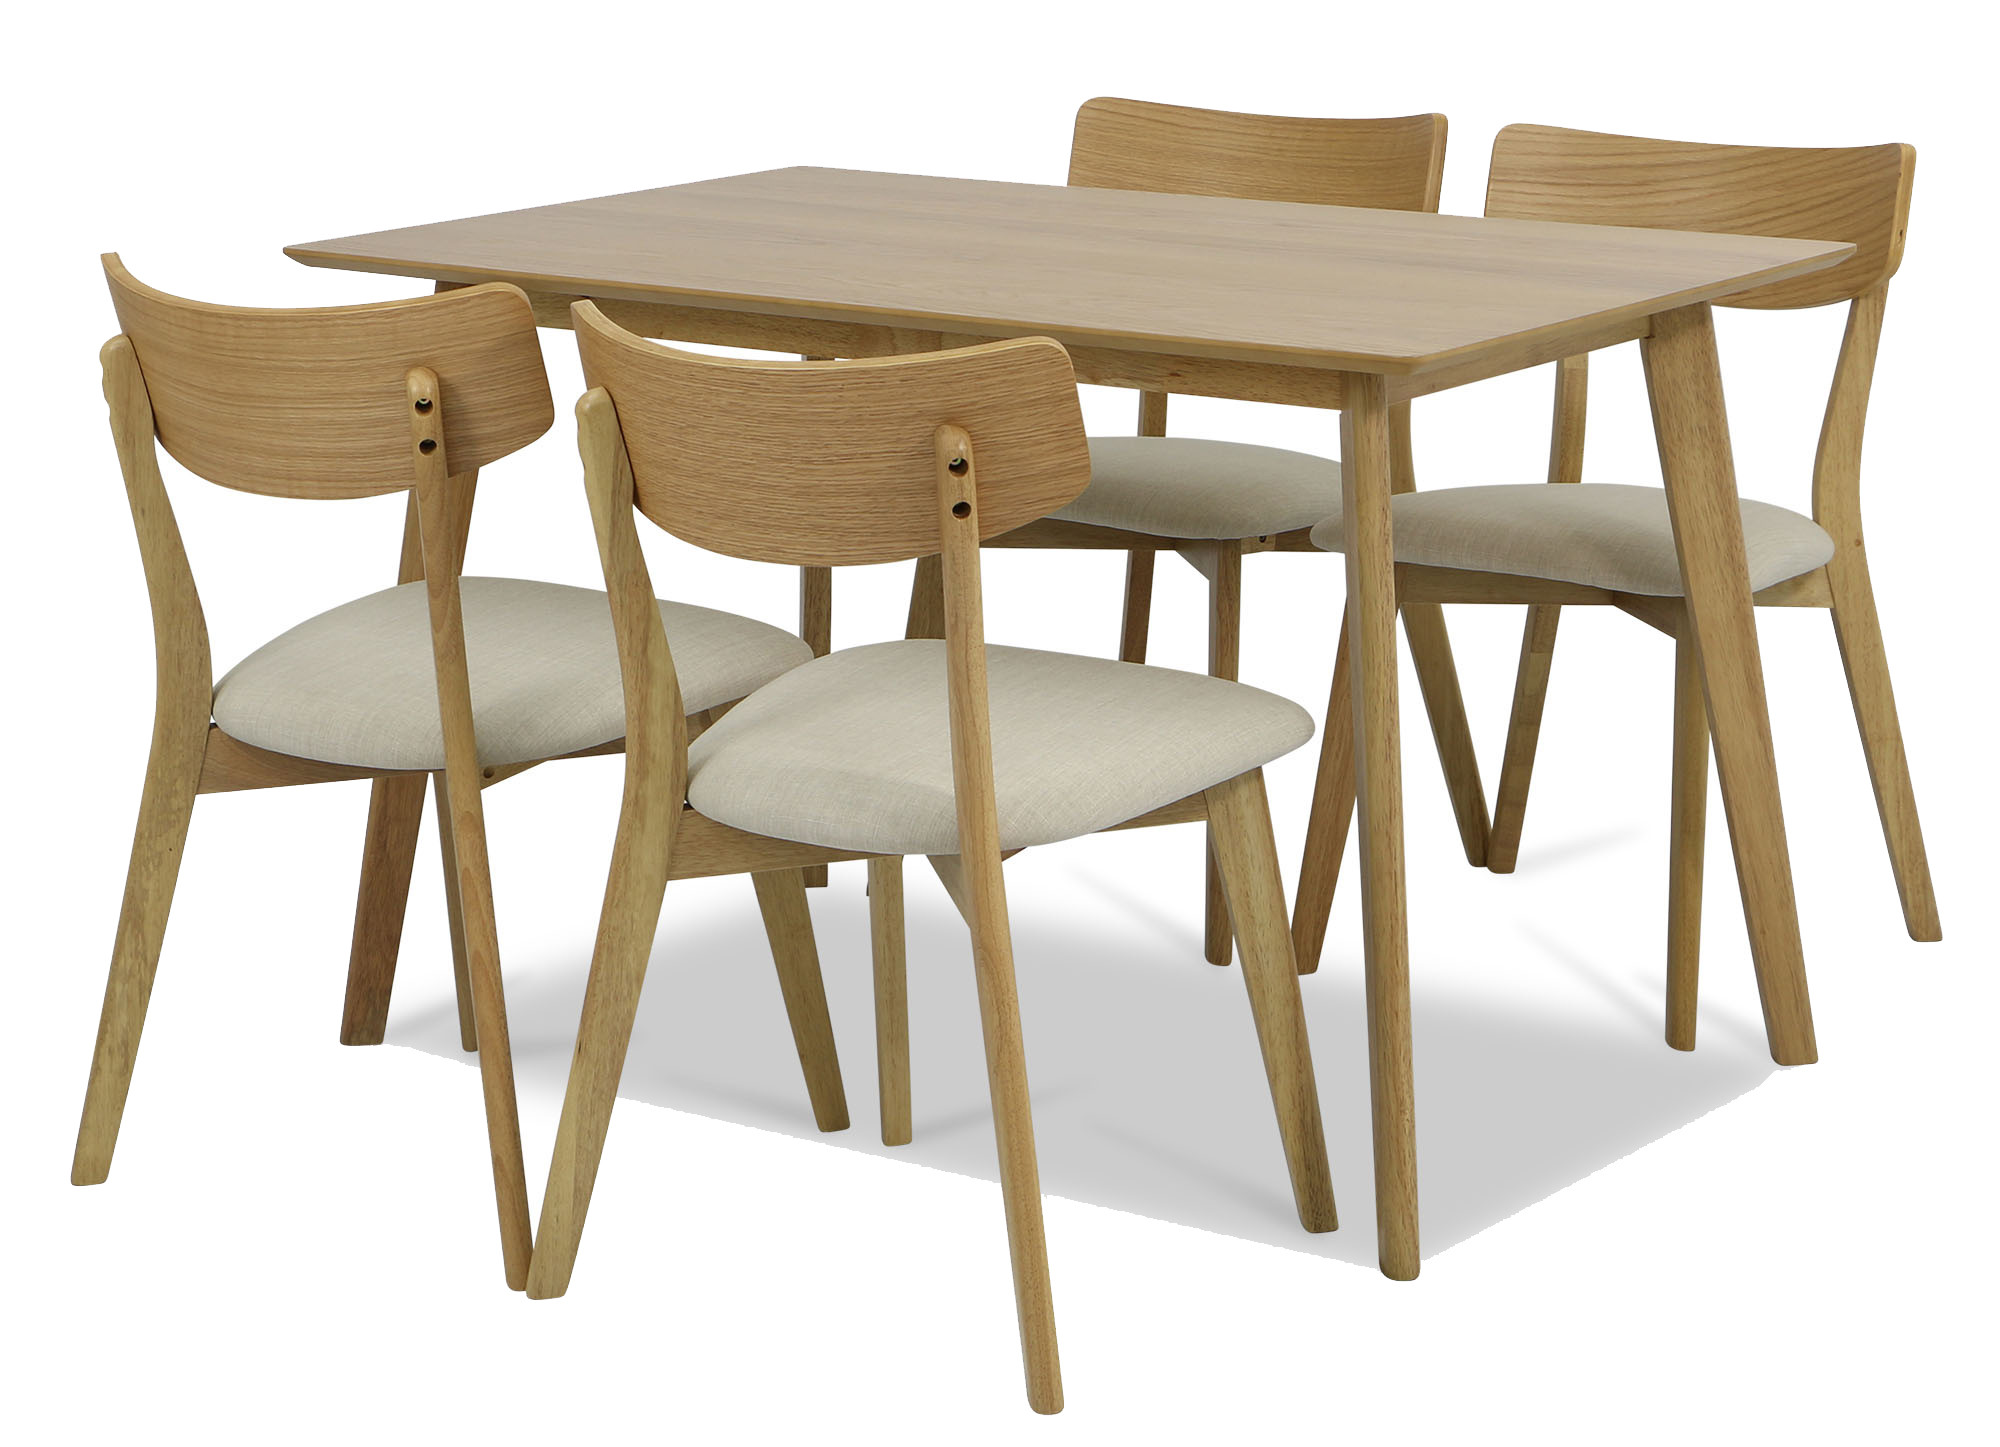 Ross Dining Table Set A Furniture Home Décor FortyTwo - Looking for dining table and chairs